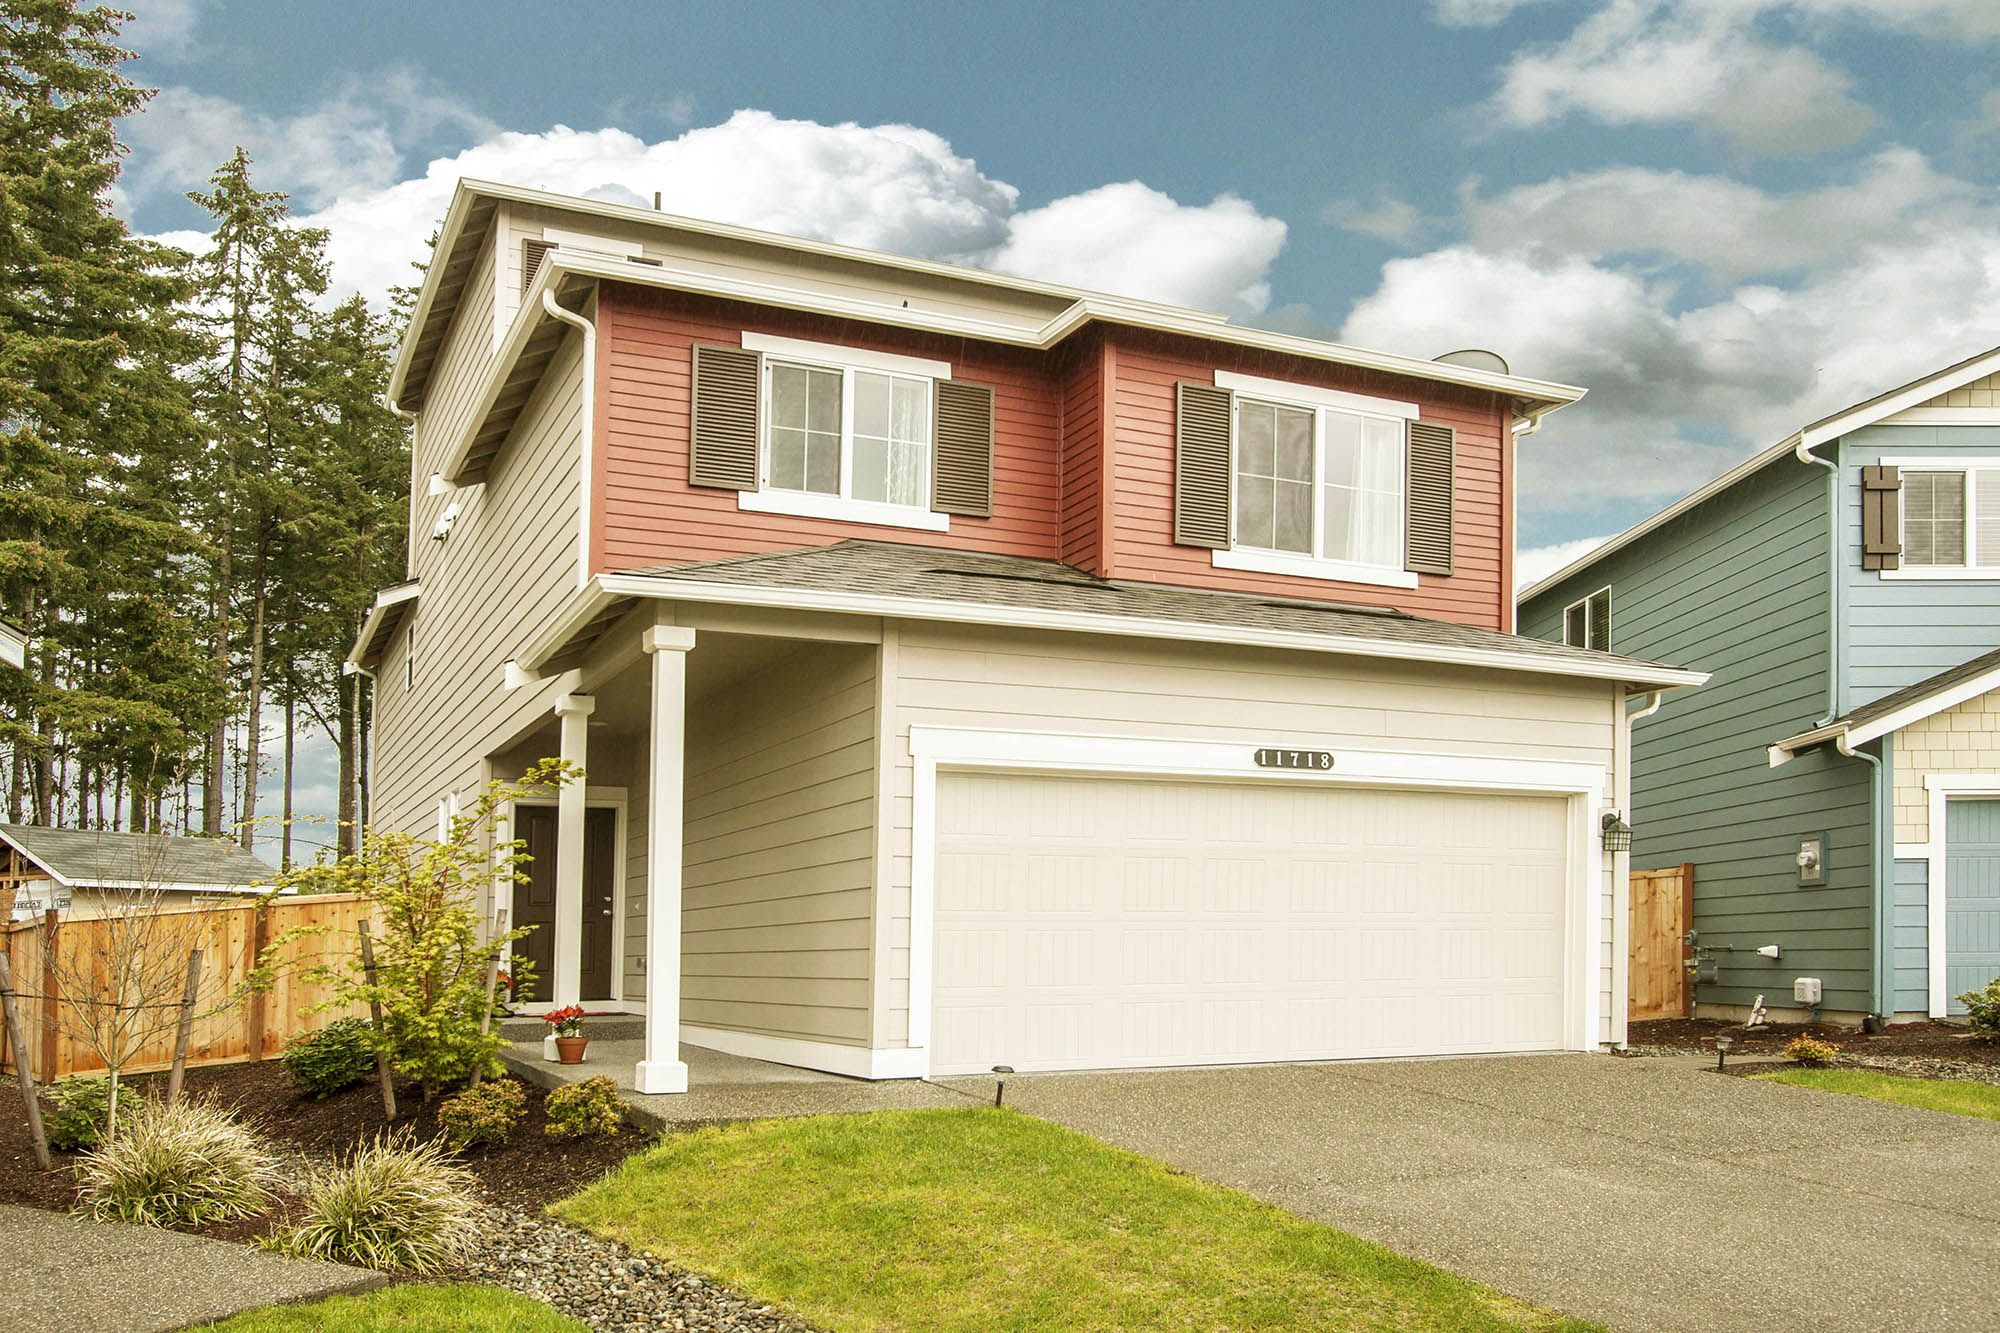 Beautiful Tri Level Puyallup Home In Lipoma Firs With Stunning View Of Mt Rainier This Young Dr Horton Ho Horton Homes Dr Horton Homes Home